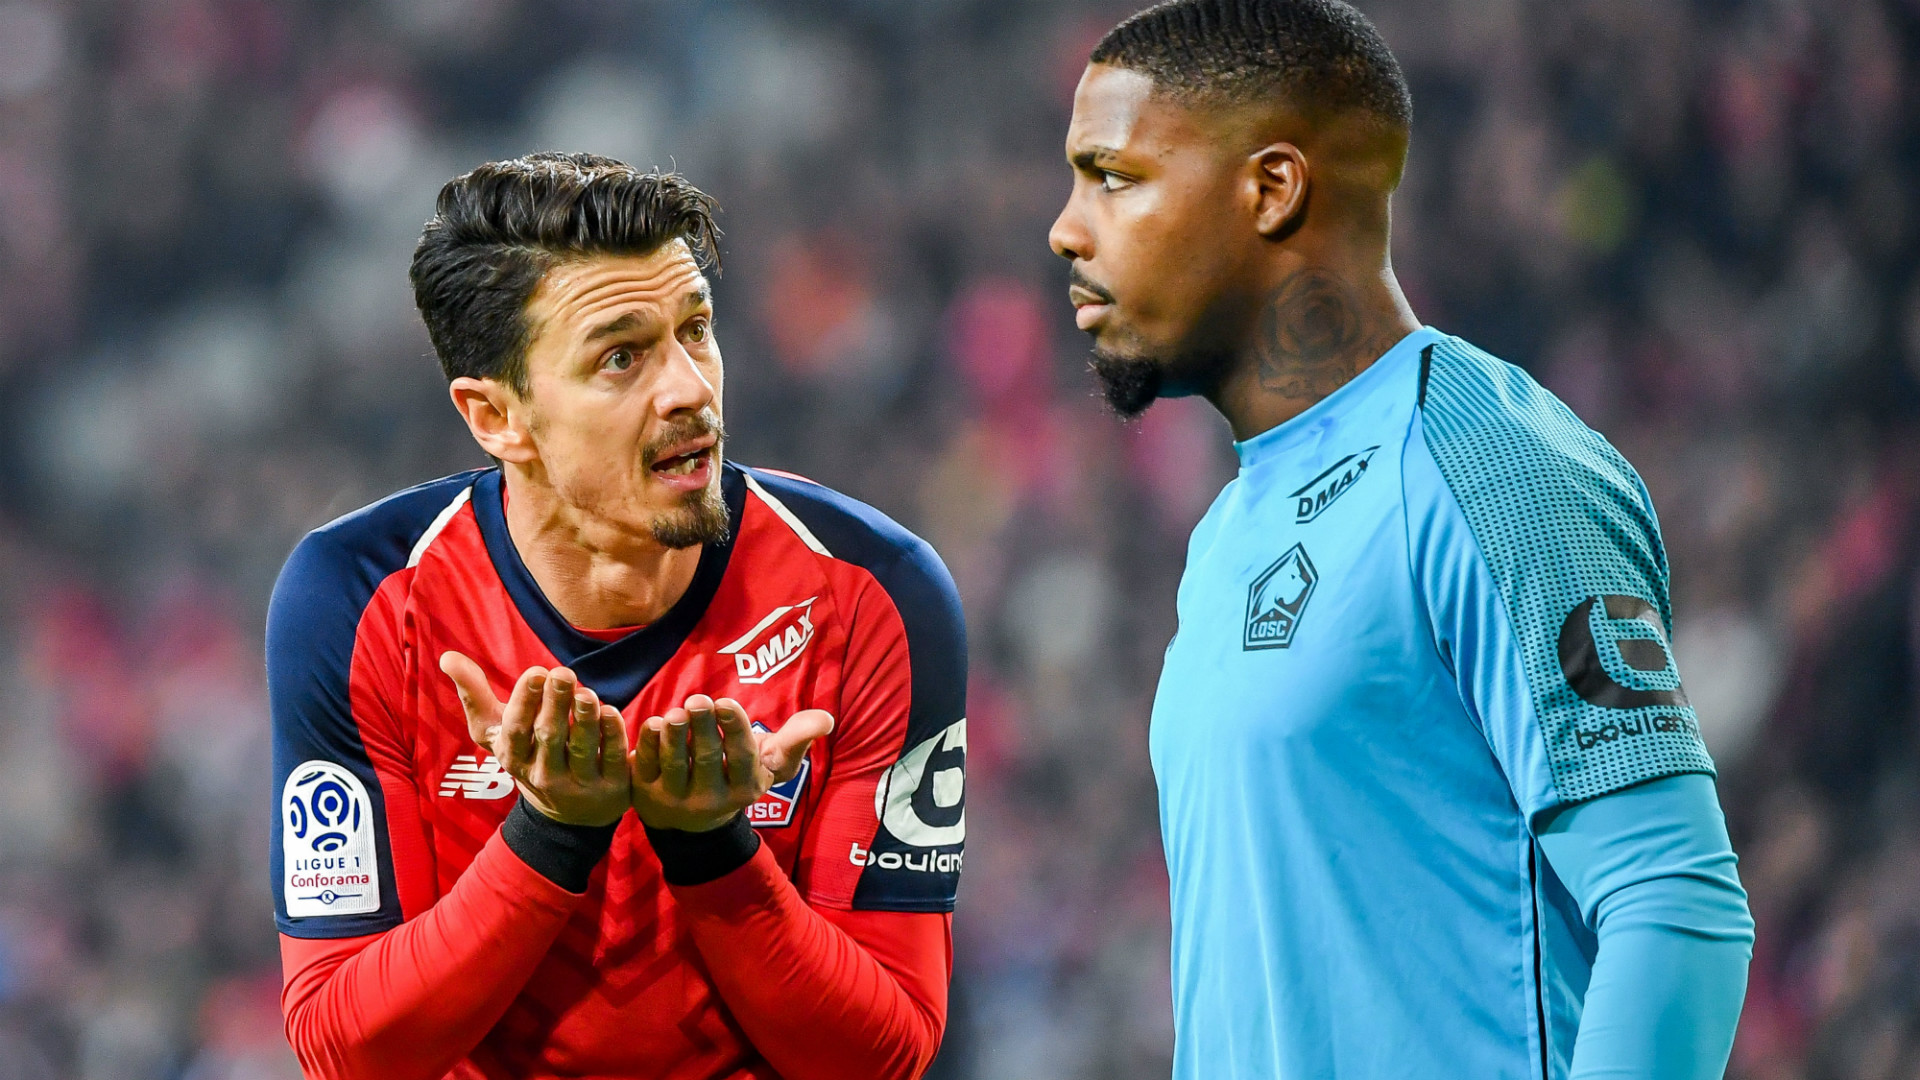 Ligue 1 Report: Lille v Paris Saint-Germain 14 April 2019